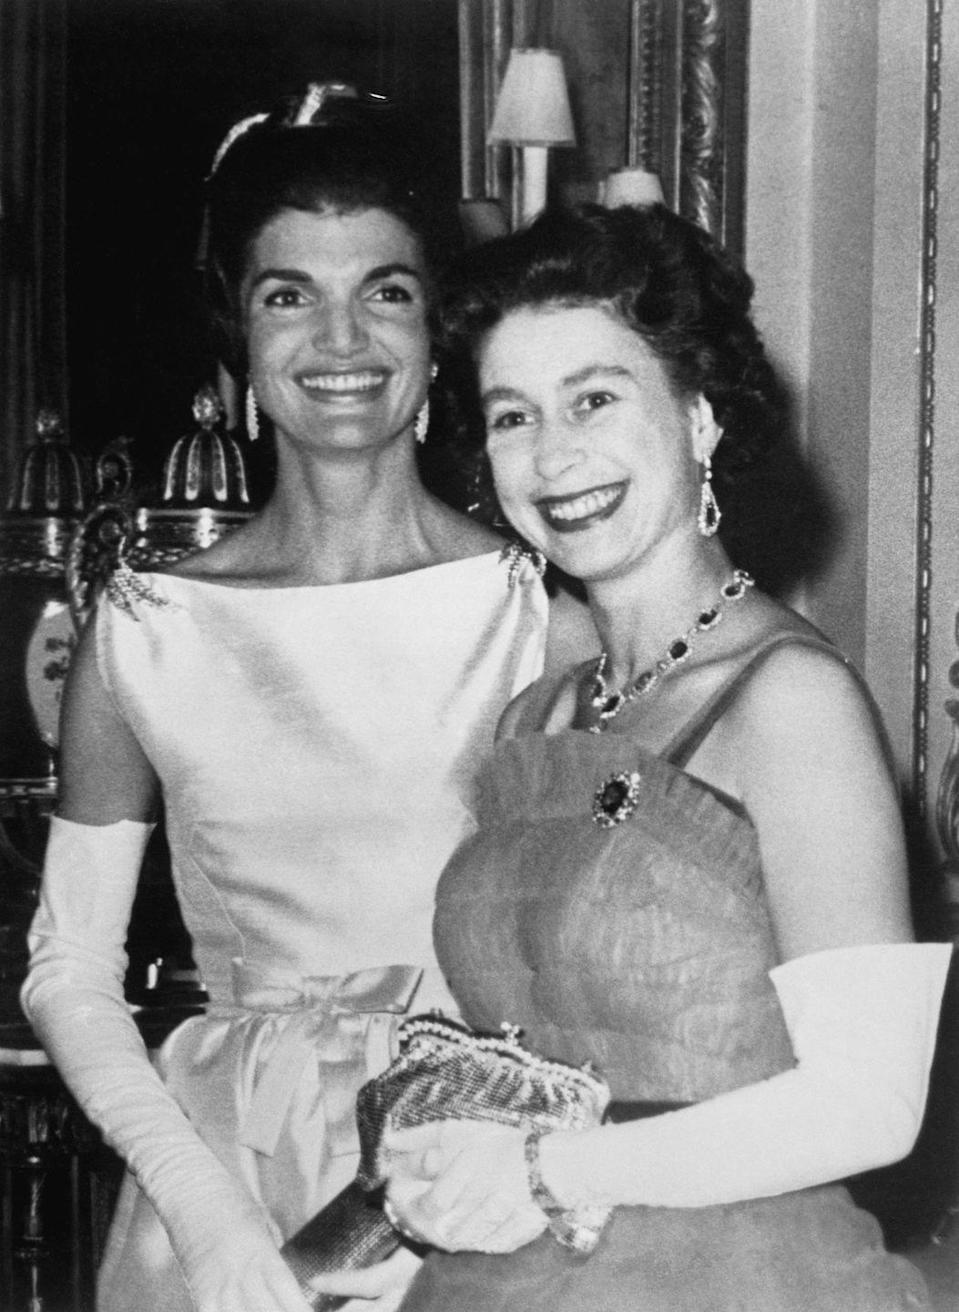 <p>Jacqueline Kennedy and Queen Elizabeth II pictured together after the Kennedys' dinner at Buckingham Palace. </p>